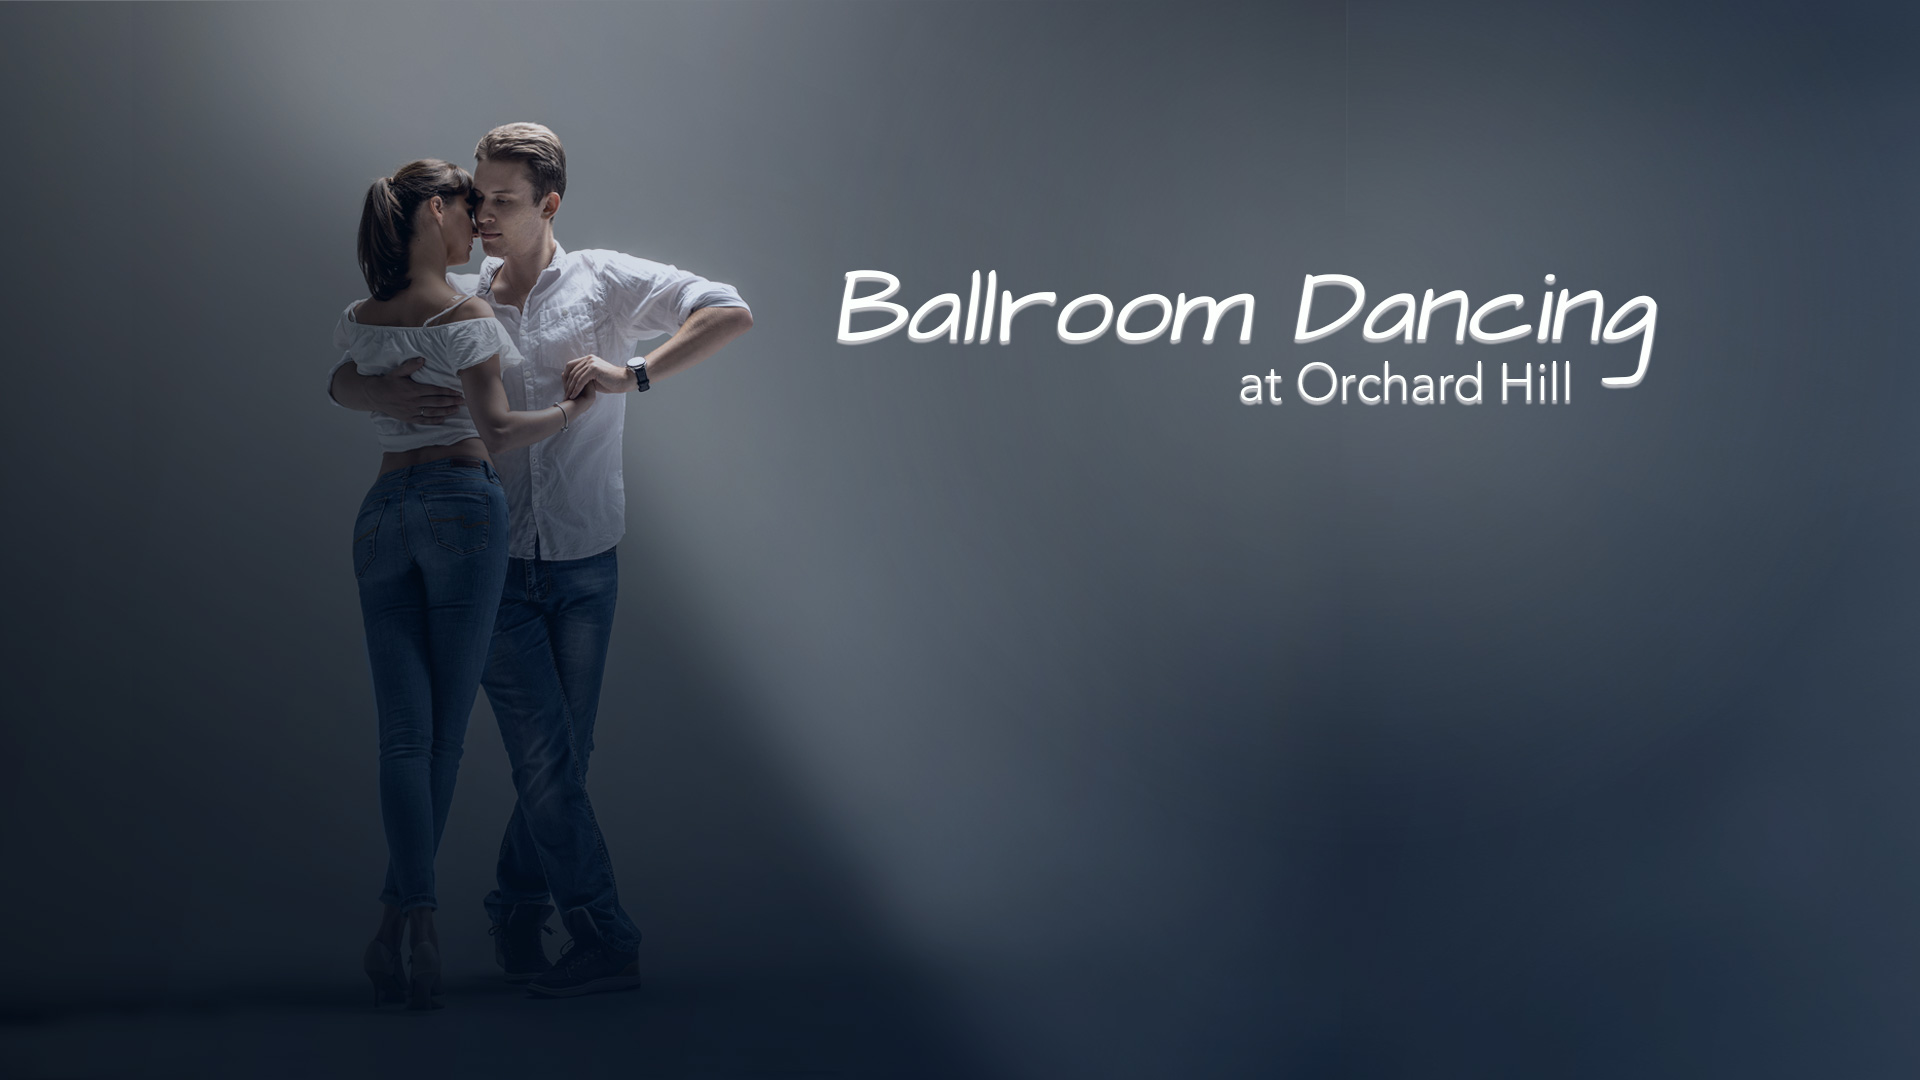 Ballroom Dancing - Certified Instructor Bobby D teaches waltz, swing, cha cha and more. Come for the entire evening or just join in at 8:00 pm for social dancing in a Gym transformed into a festive ballroom. Walk-ins are welcome.1st & 3rd Fridays September 6 - December 67:00 - 8:00 pm (Beginner Dance Lesson)8:00 - 10:30 pm (Social Dancing)$10 per person at the doorBeginner Dance Lessons ScheduleSeptember - SwingOctober - Cha ChaNovember - Argentine TangoDecember - Fox Trot